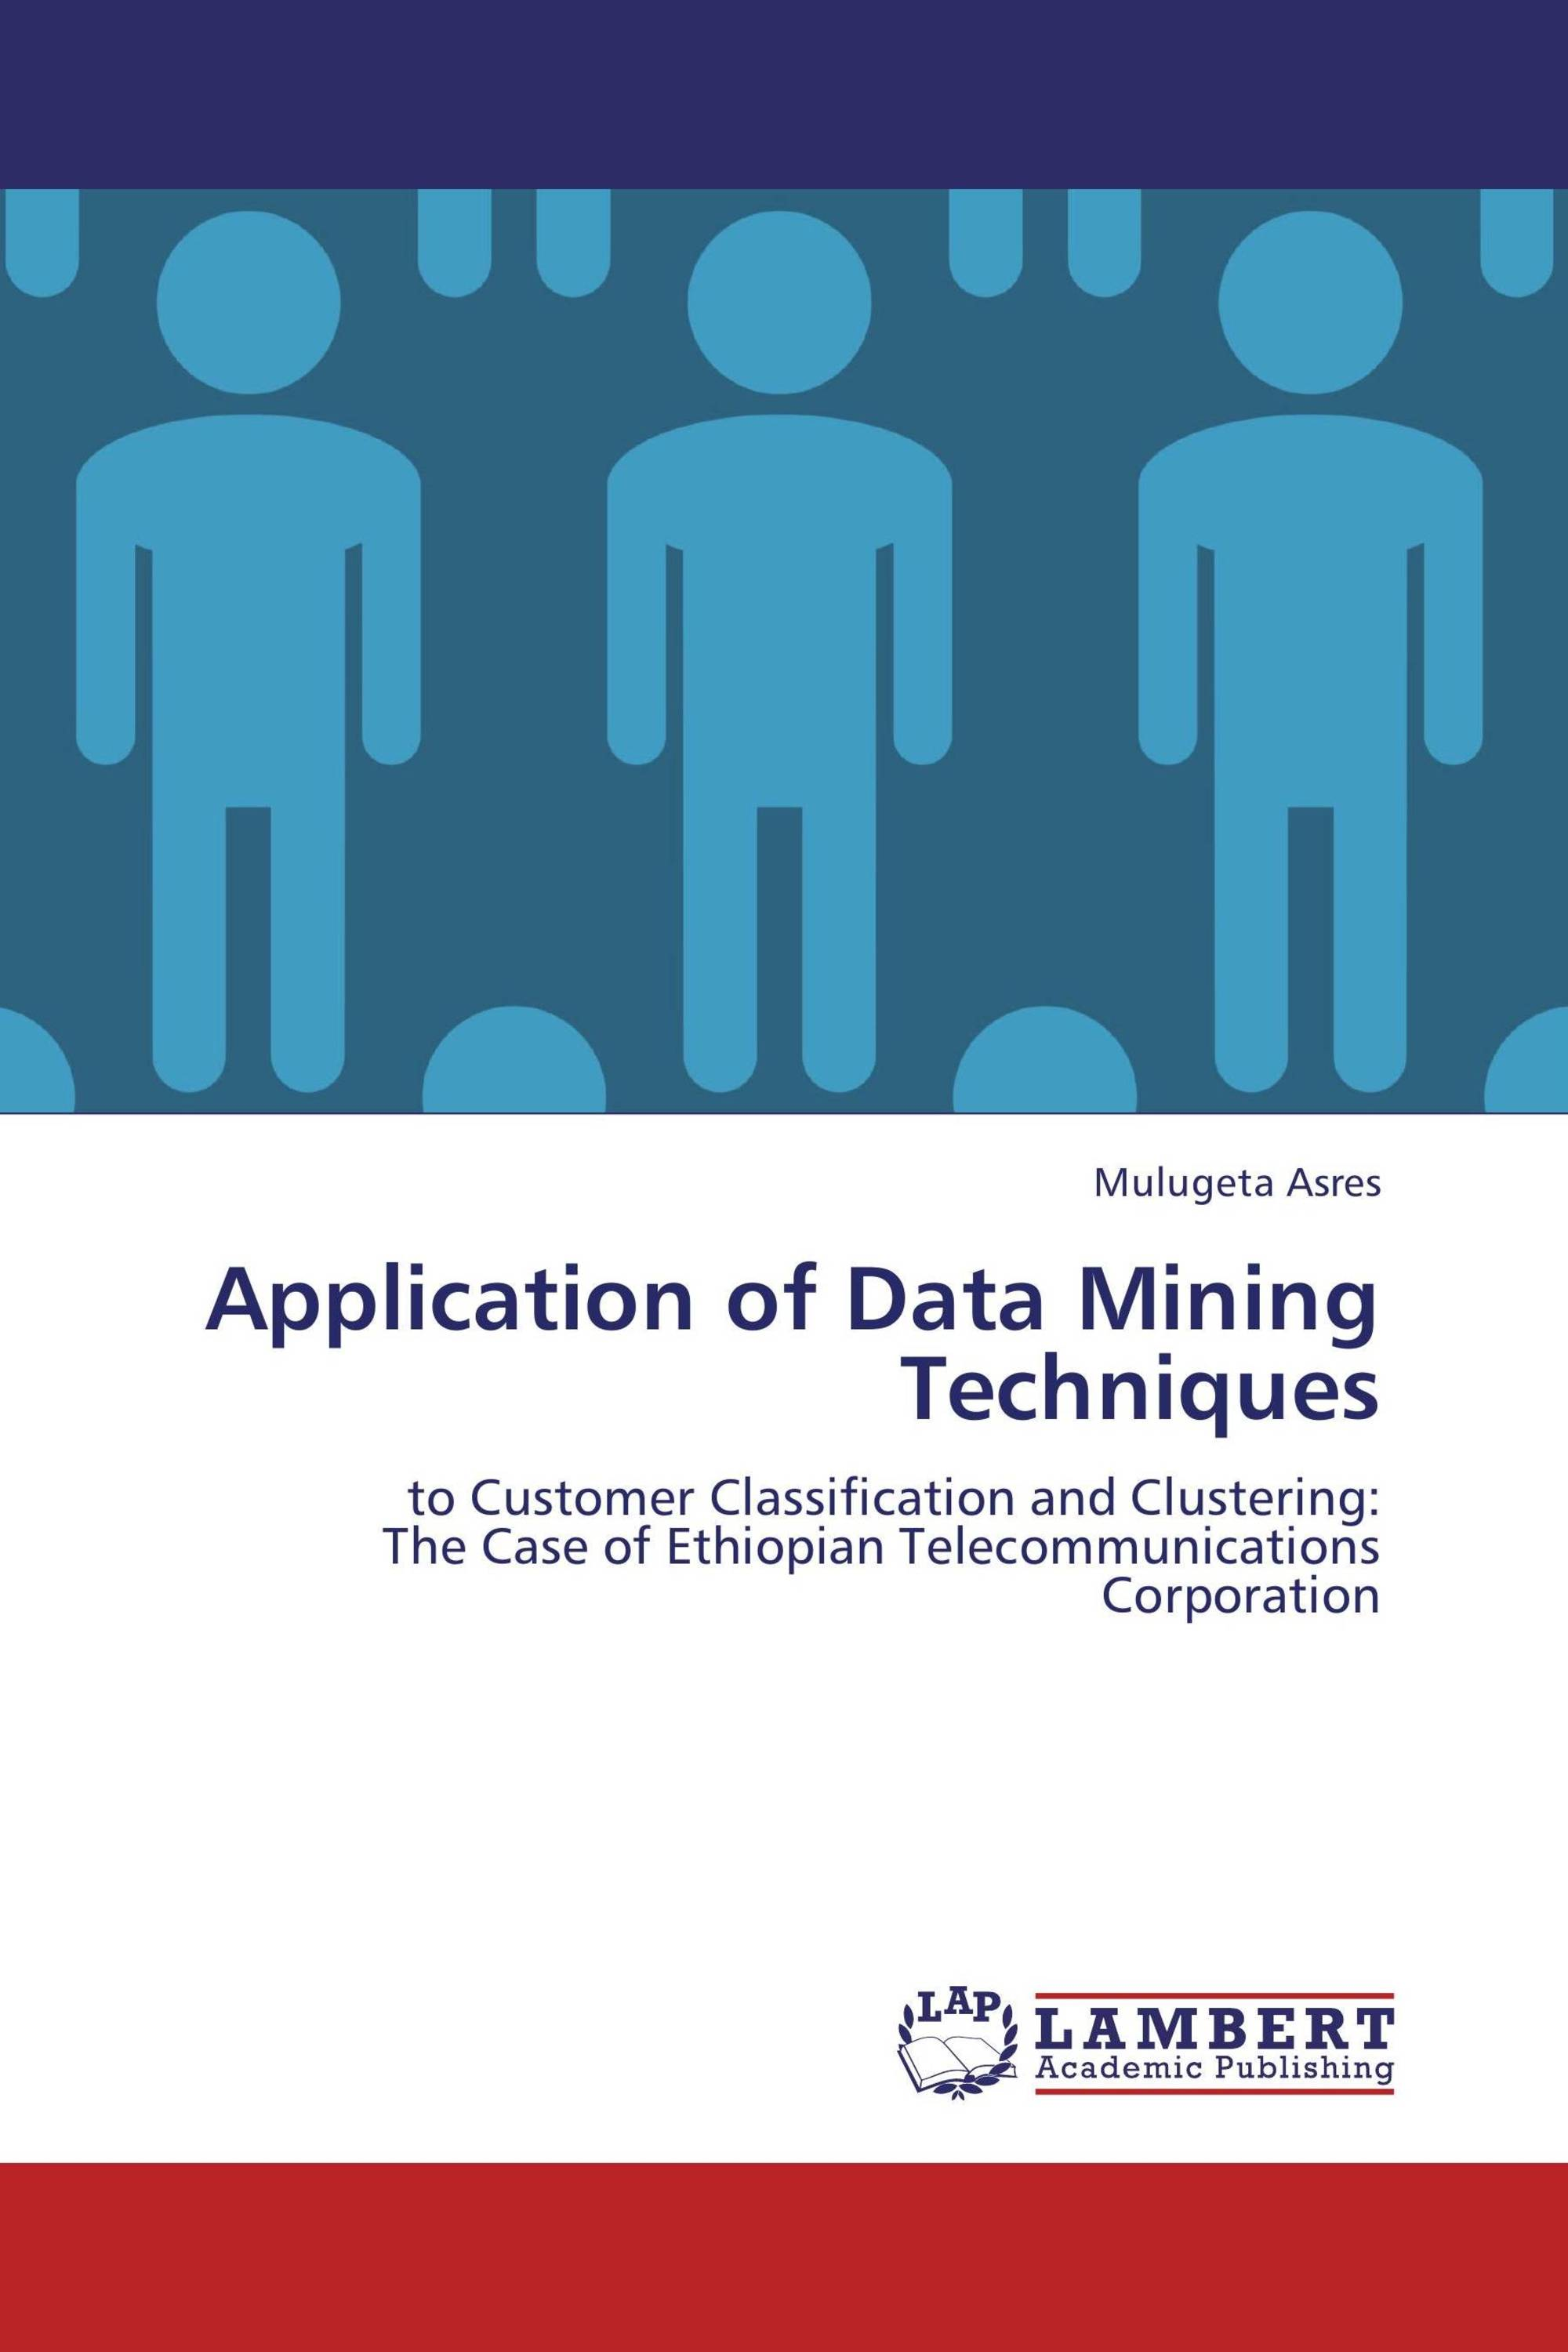 thesis data mining techniques